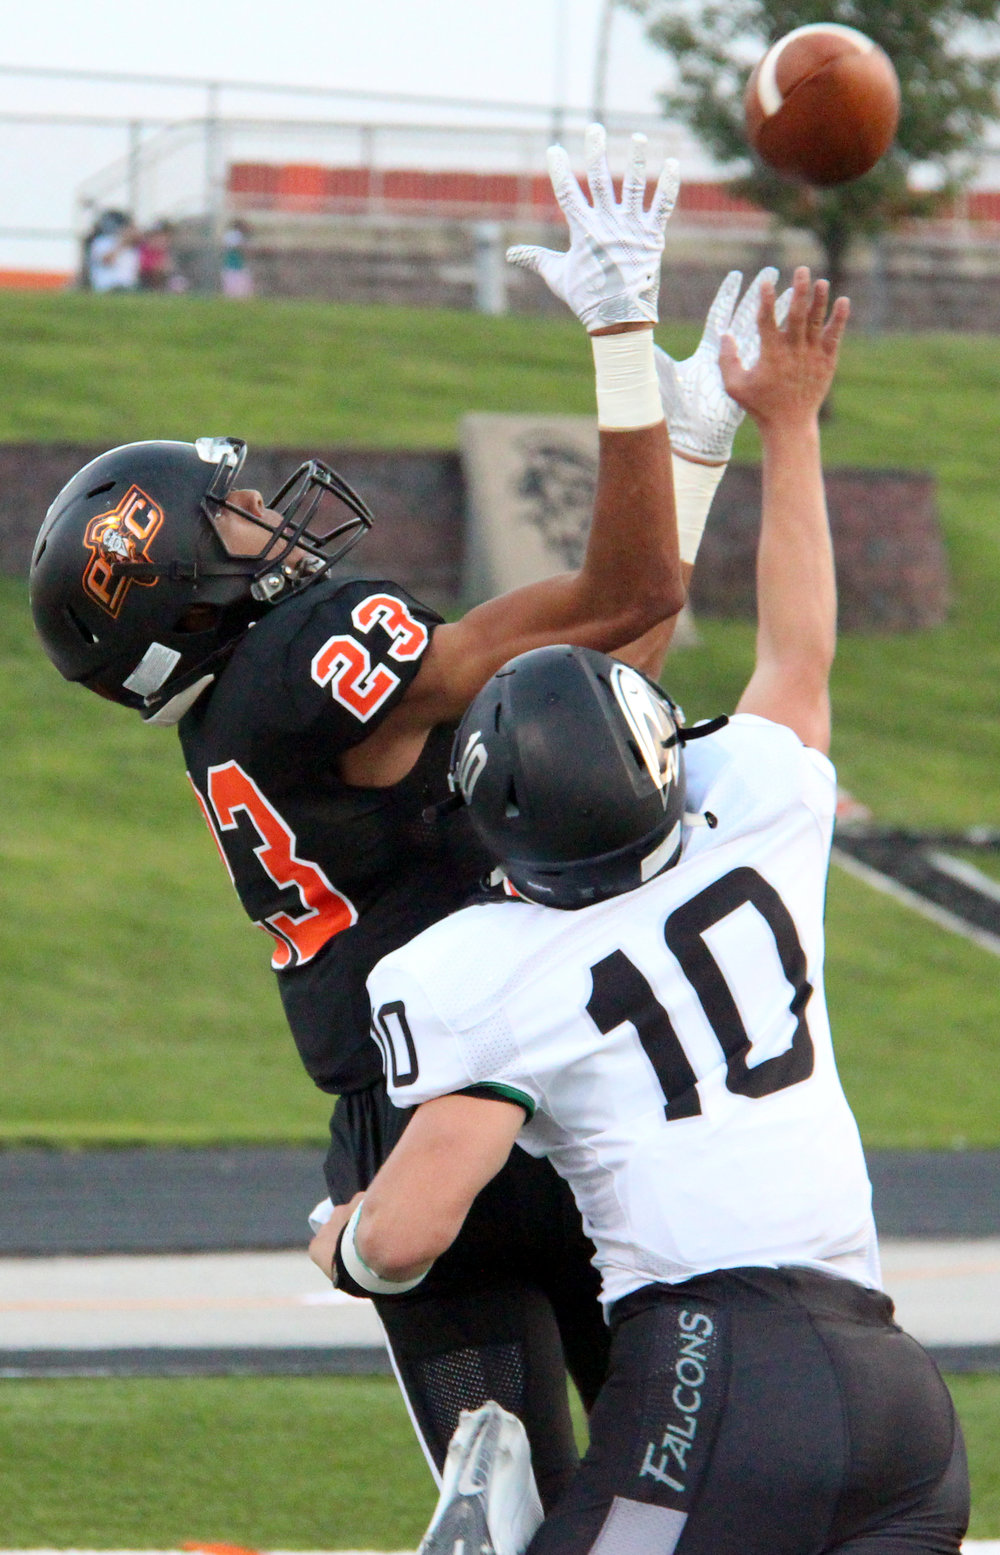 ROSS MARTIN/Citizen photo Platte County senior wide receiver John Watts, left, hauls in one of his two touchdown receptions against Staley on Friday, Sept. 1 at Pirate Stadium.